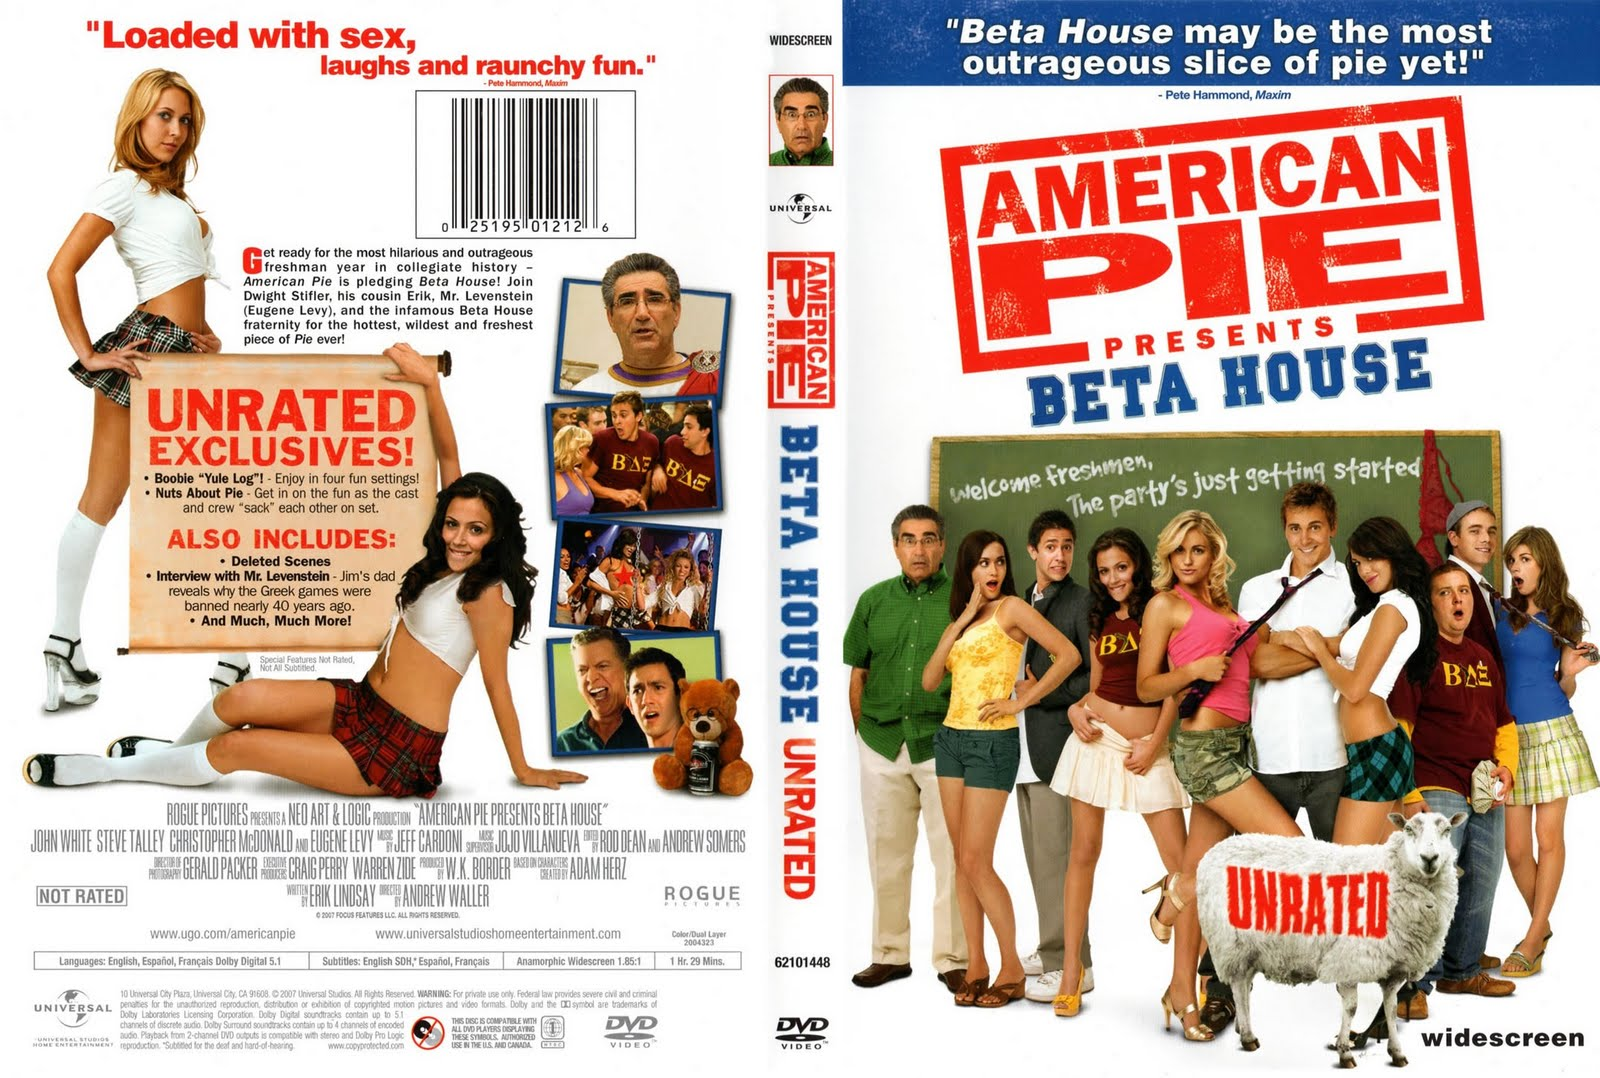 American Pie Presents Beta House Full Movie vagebond's movie screenshots: american pie presents beta